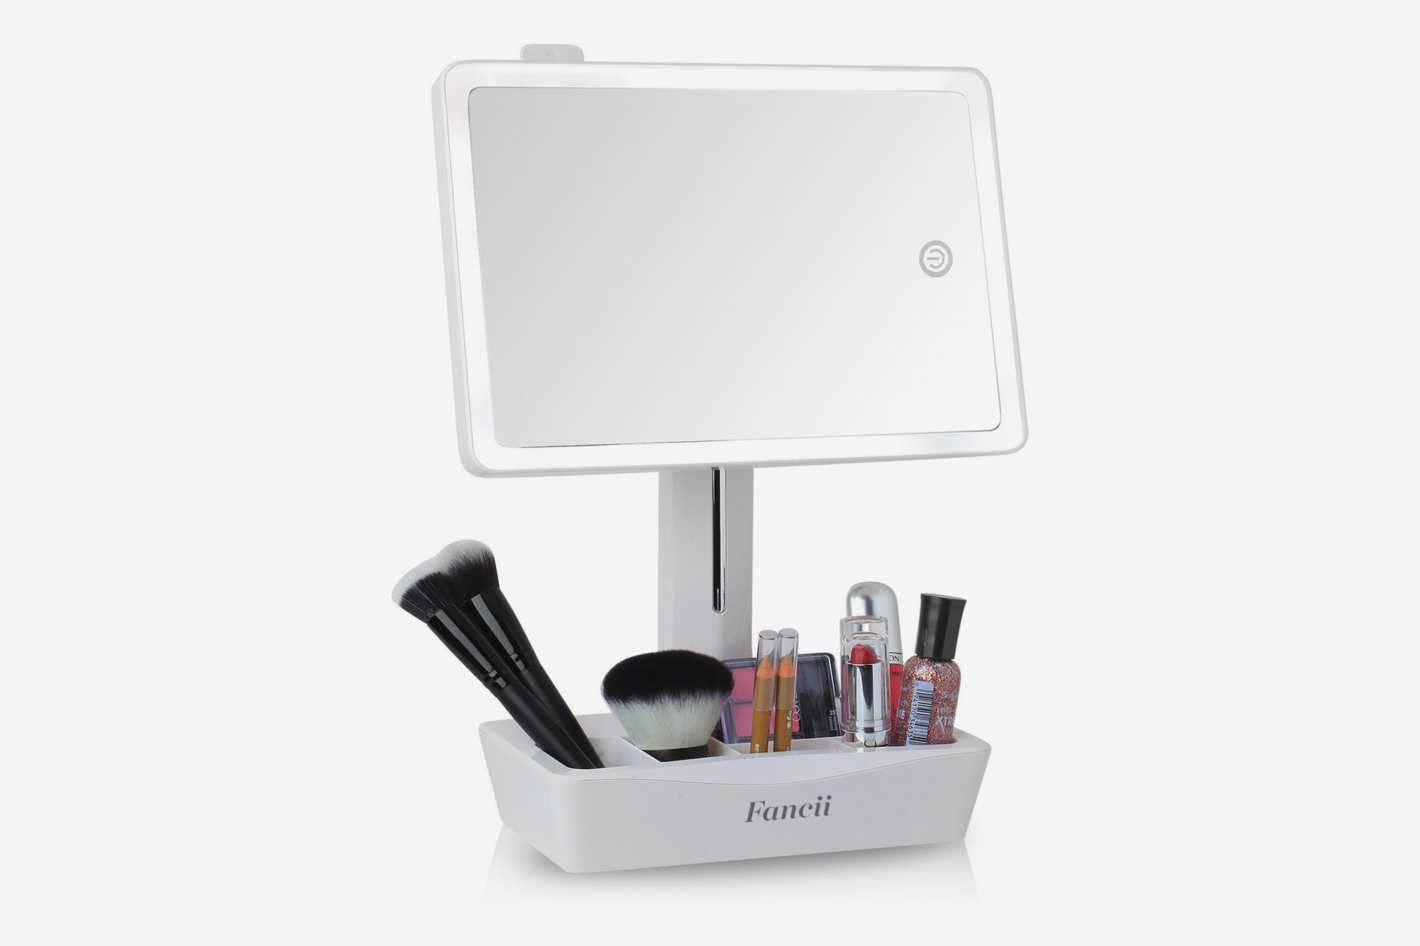 The Best Lighted Makeup Mirrors On Amazon According To Reviewers Makeup Mirror With Lights Wall Mounted Lighted Makeup Mirror Makeup Mirror